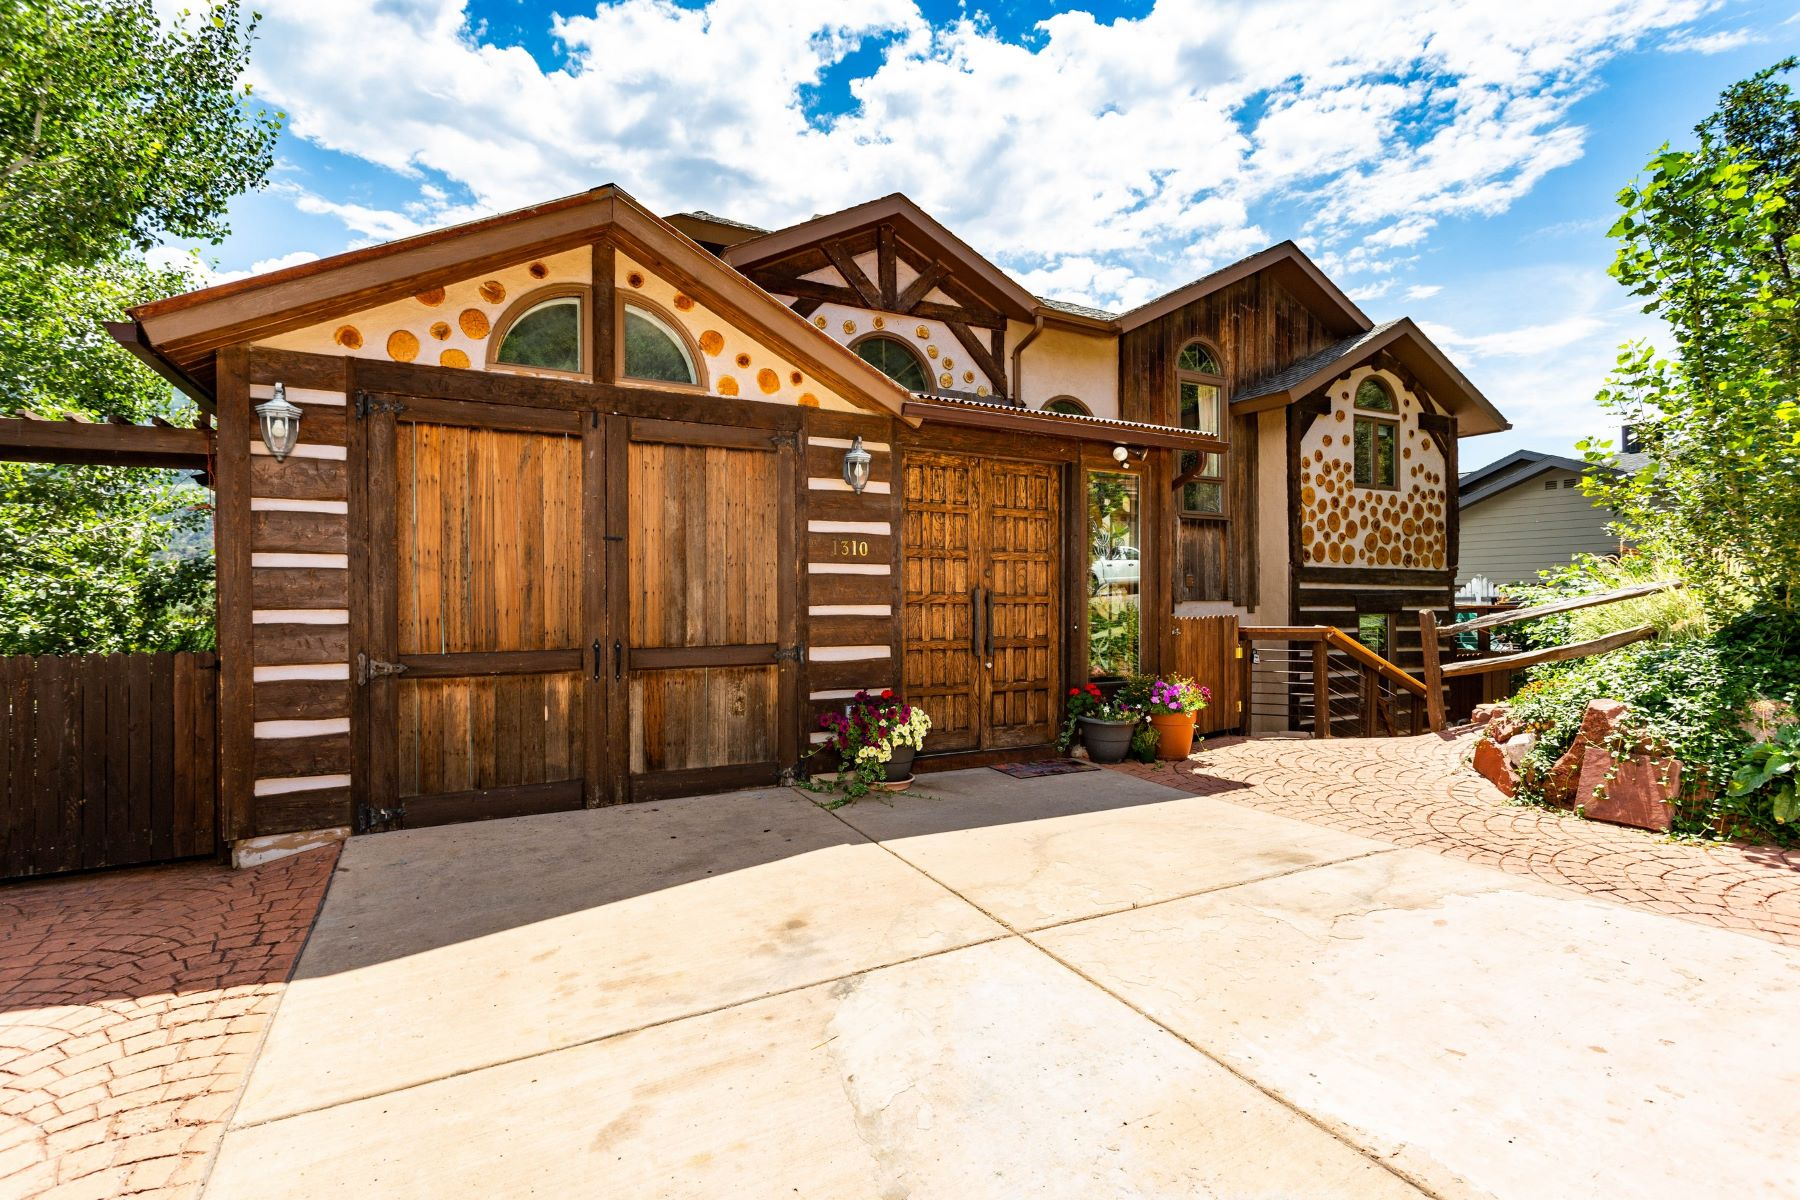 Single Family Homes for Sale at RED MOUNTAIN TERRACE, LOT 5 1310 Walz Avenue Glenwood Springs, Colorado 81601 United States